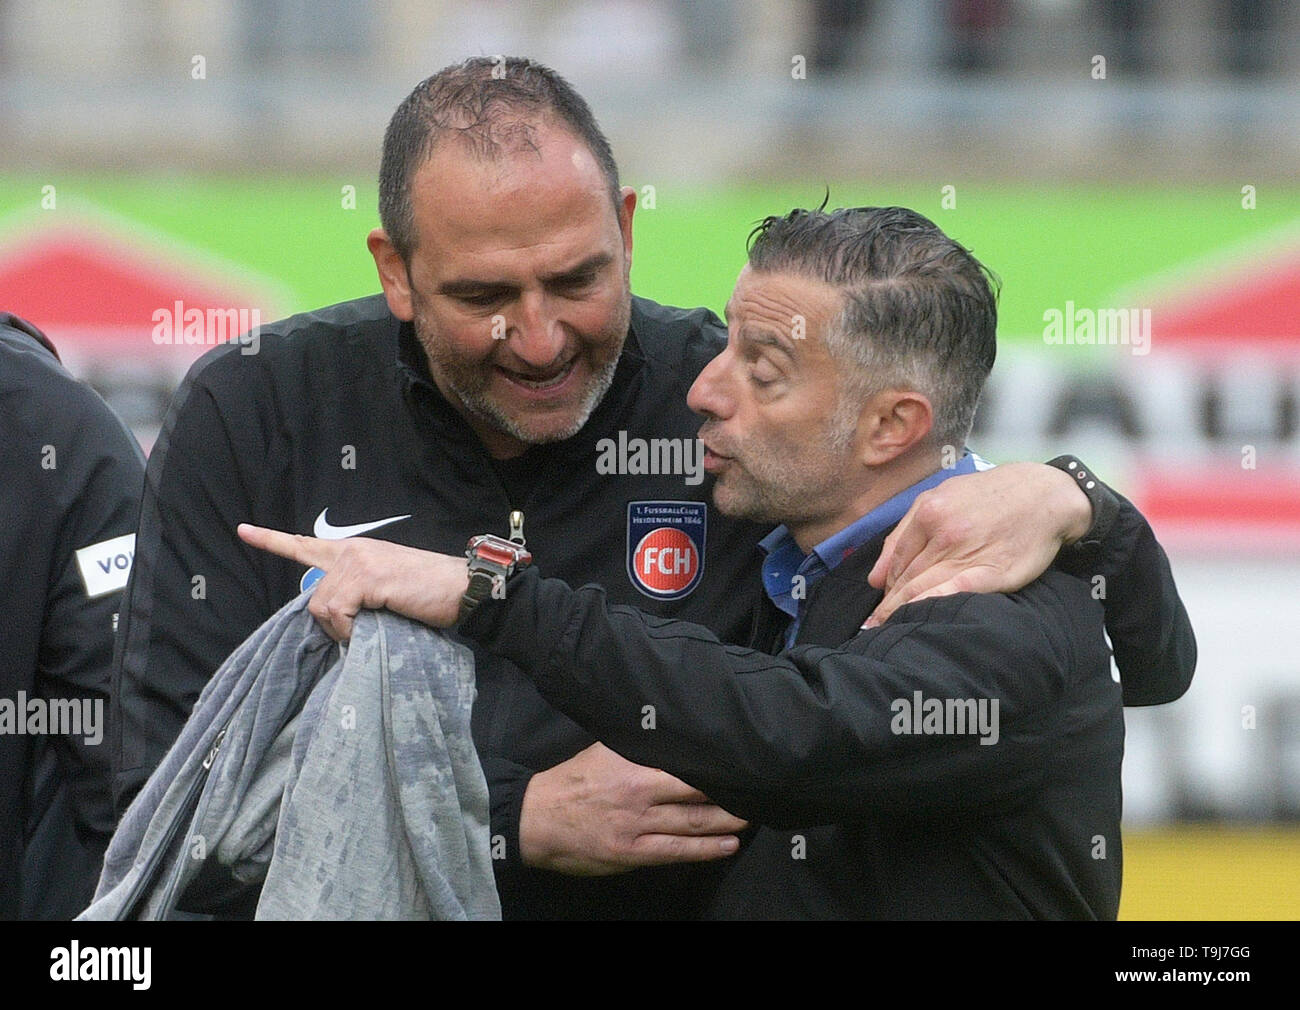 Heidenheim, Germany. 19th May, 2019. Soccer: 2nd Bundesliga, 1st FC Heidenheim - FC Ingolstadt 04, 34th matchday in the Voith Arena. Coach Frank Schmidt (Heidenheim, l) talks to coach Thomas Oral (Ingolstadt). The Oberbayern lost on the last matchday in a dramatic game at 1. FC Heidenheim with 2:4 (0:2). After their first defeat with Oral, they finish the season in 16th place. Photo: Stefan Puchner/dpa - IMPORTANT NOTE: In accordance with the requirements of the DFL Deutsche Fußball Liga or the DFB Deutscher Fußball-Bund, it is prohibited to use or have used photographs taken in the st Credit: - Stock Image